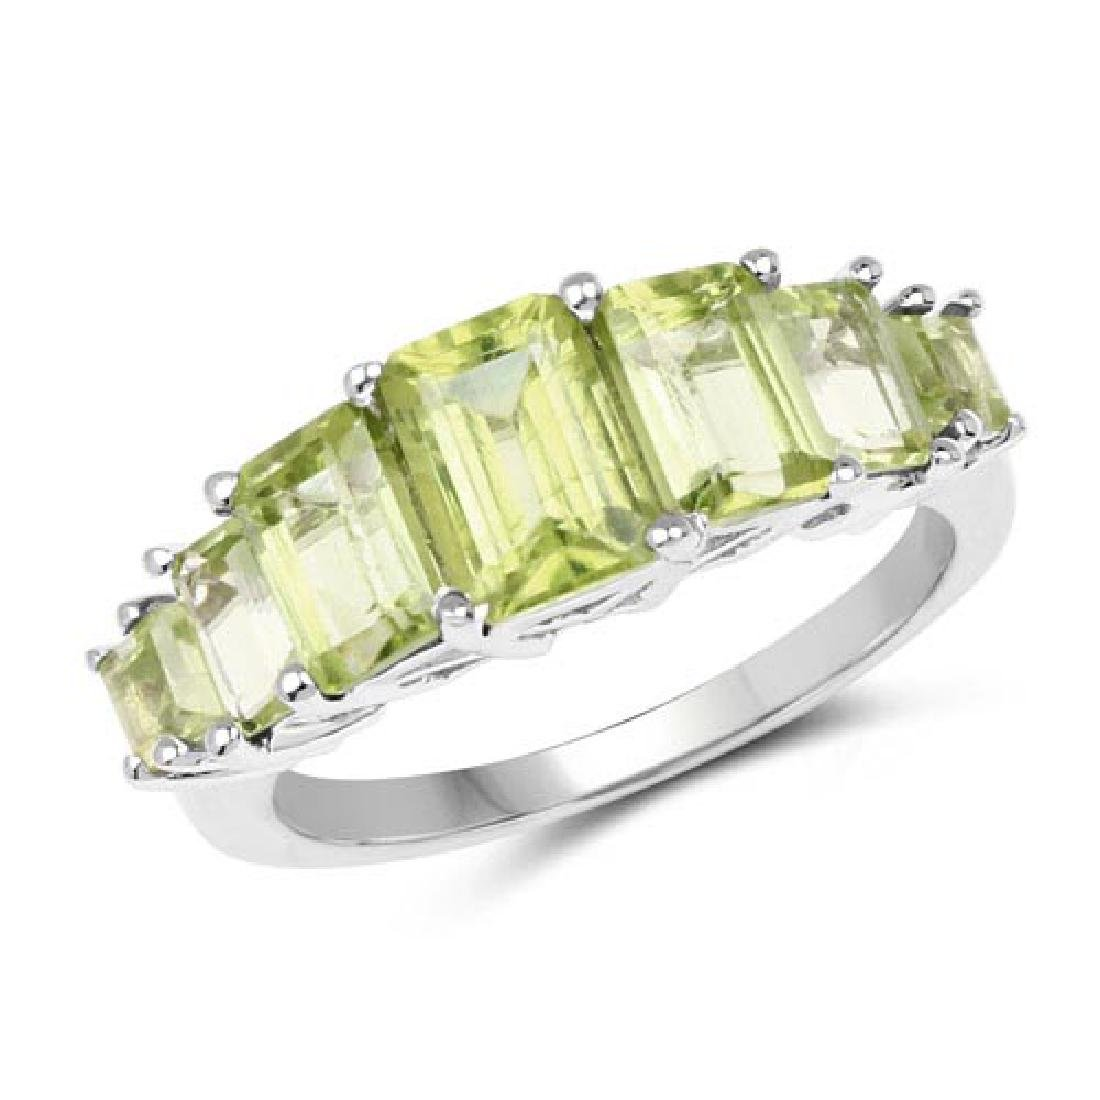 3.12 Carat Genuine Peridot .925 Sterling Silver Ring